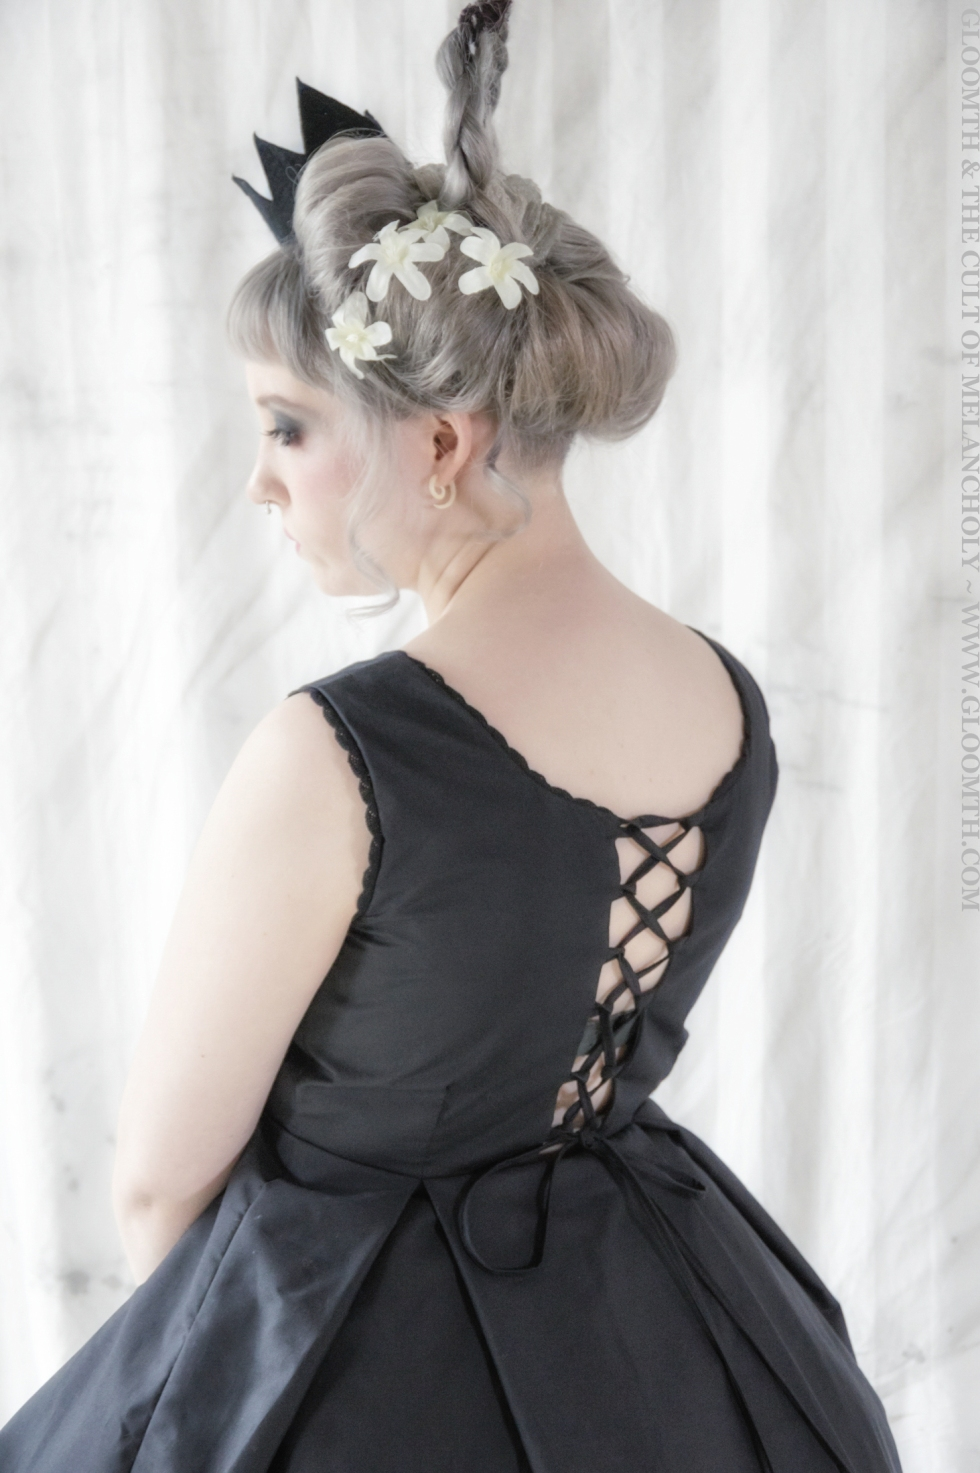 corset back party dress gothic clothing gloomth